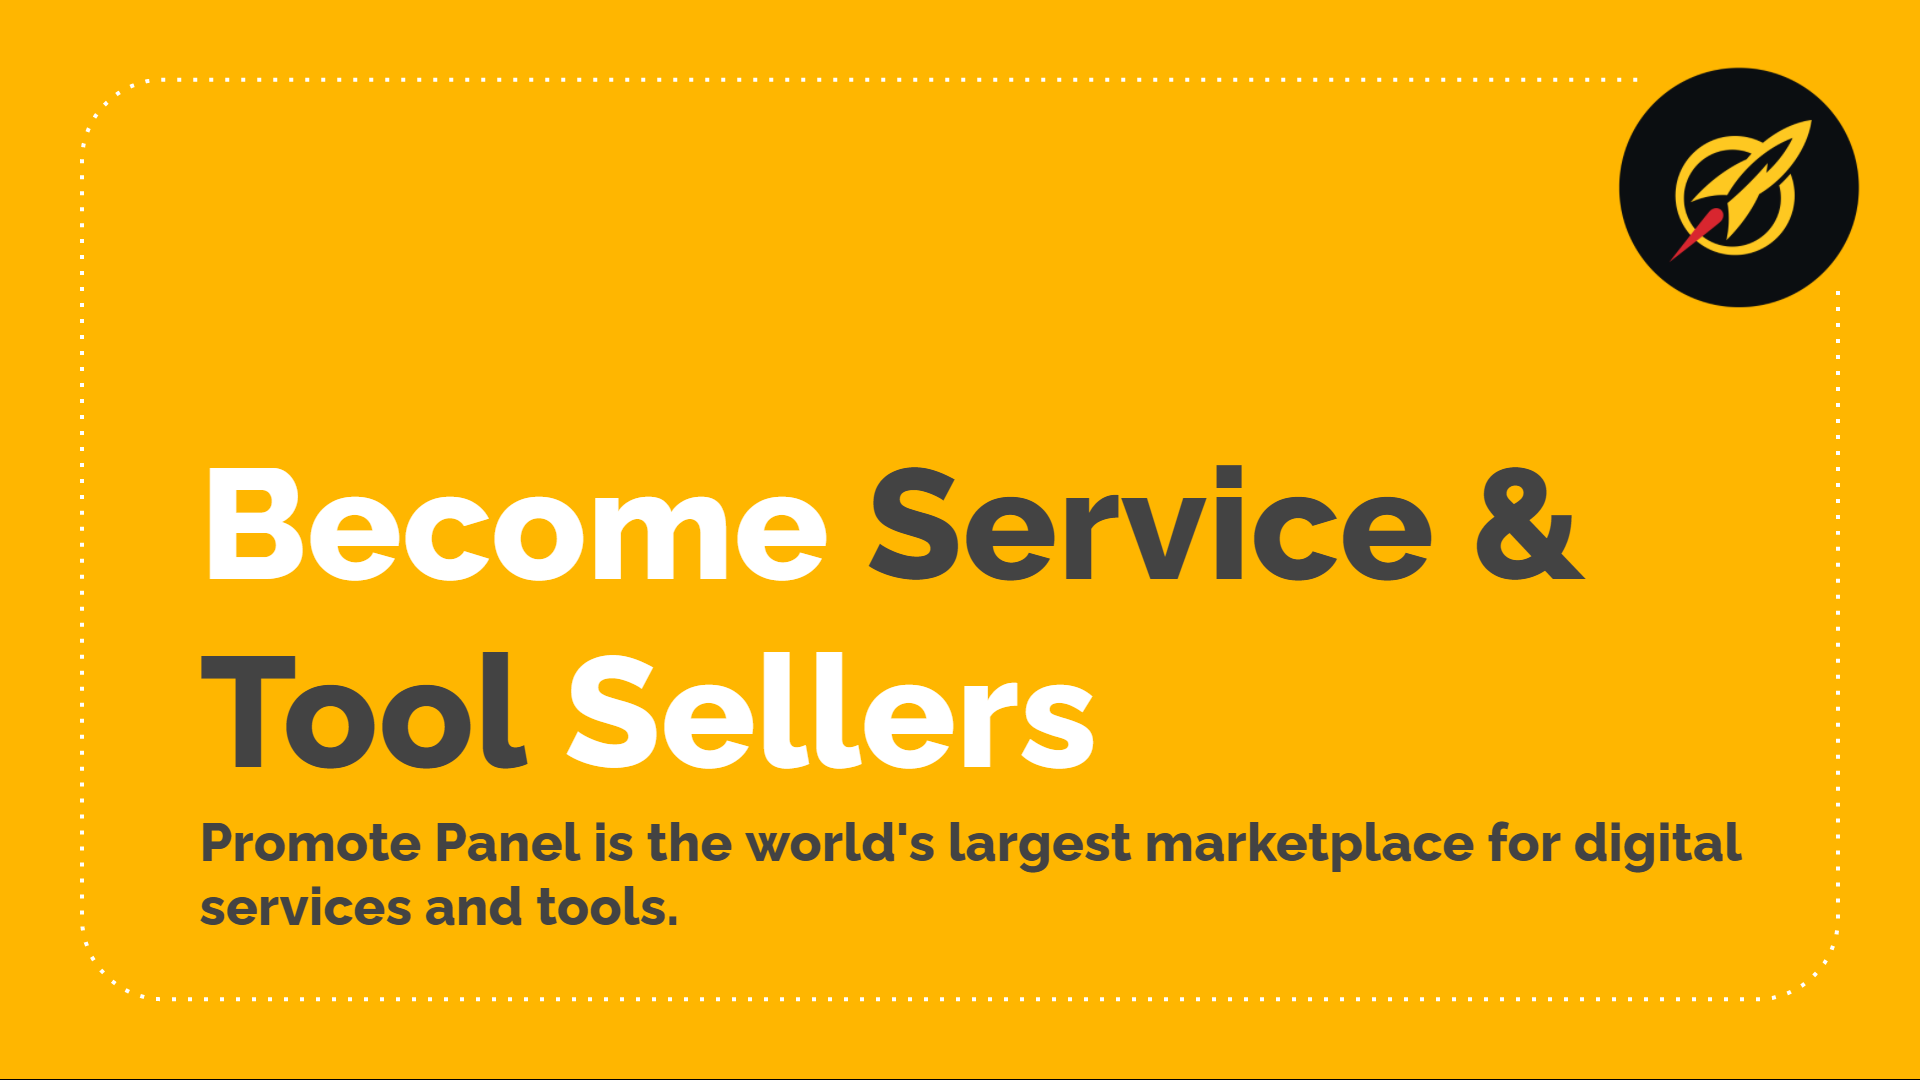 Become Service & Tool Sellers in Promote Panel